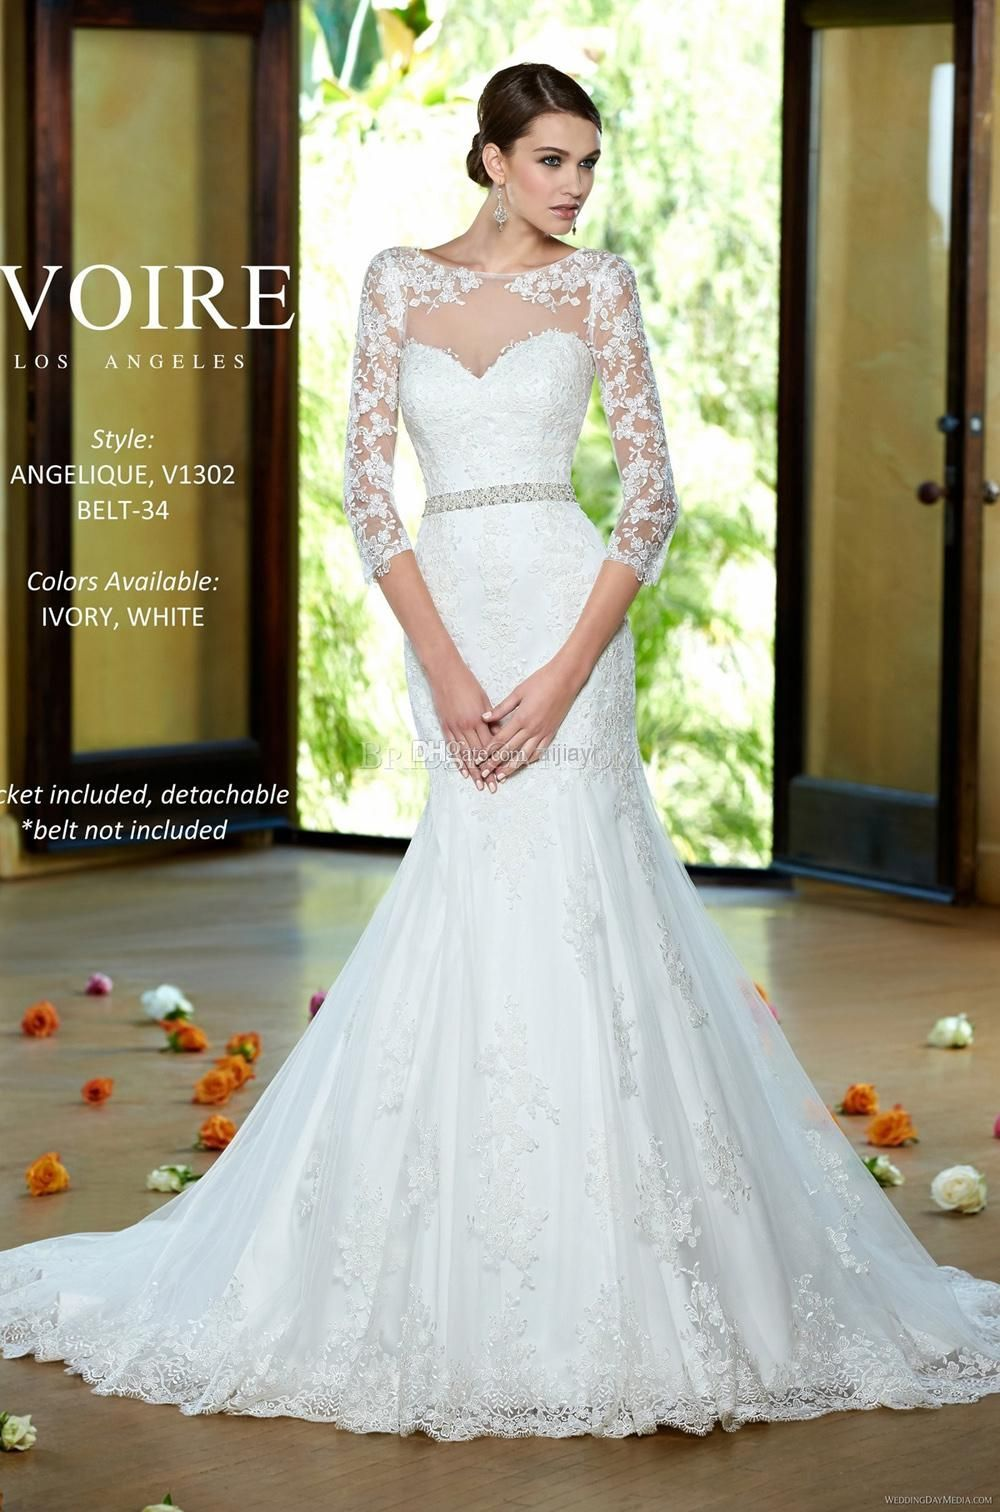 Custom made free vestido de noiva princess wedding gown with sash